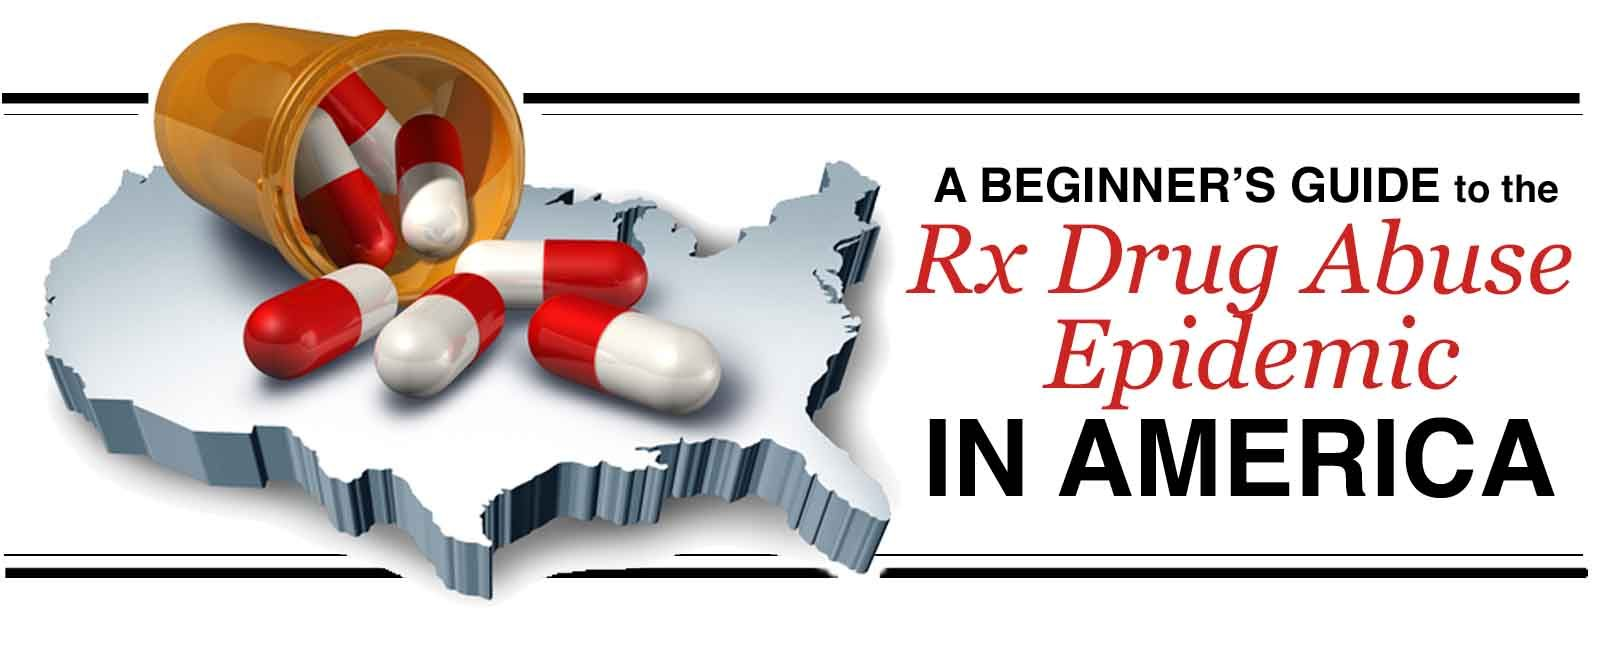 The beginner's guide to prescription drug abuse epidemic in America